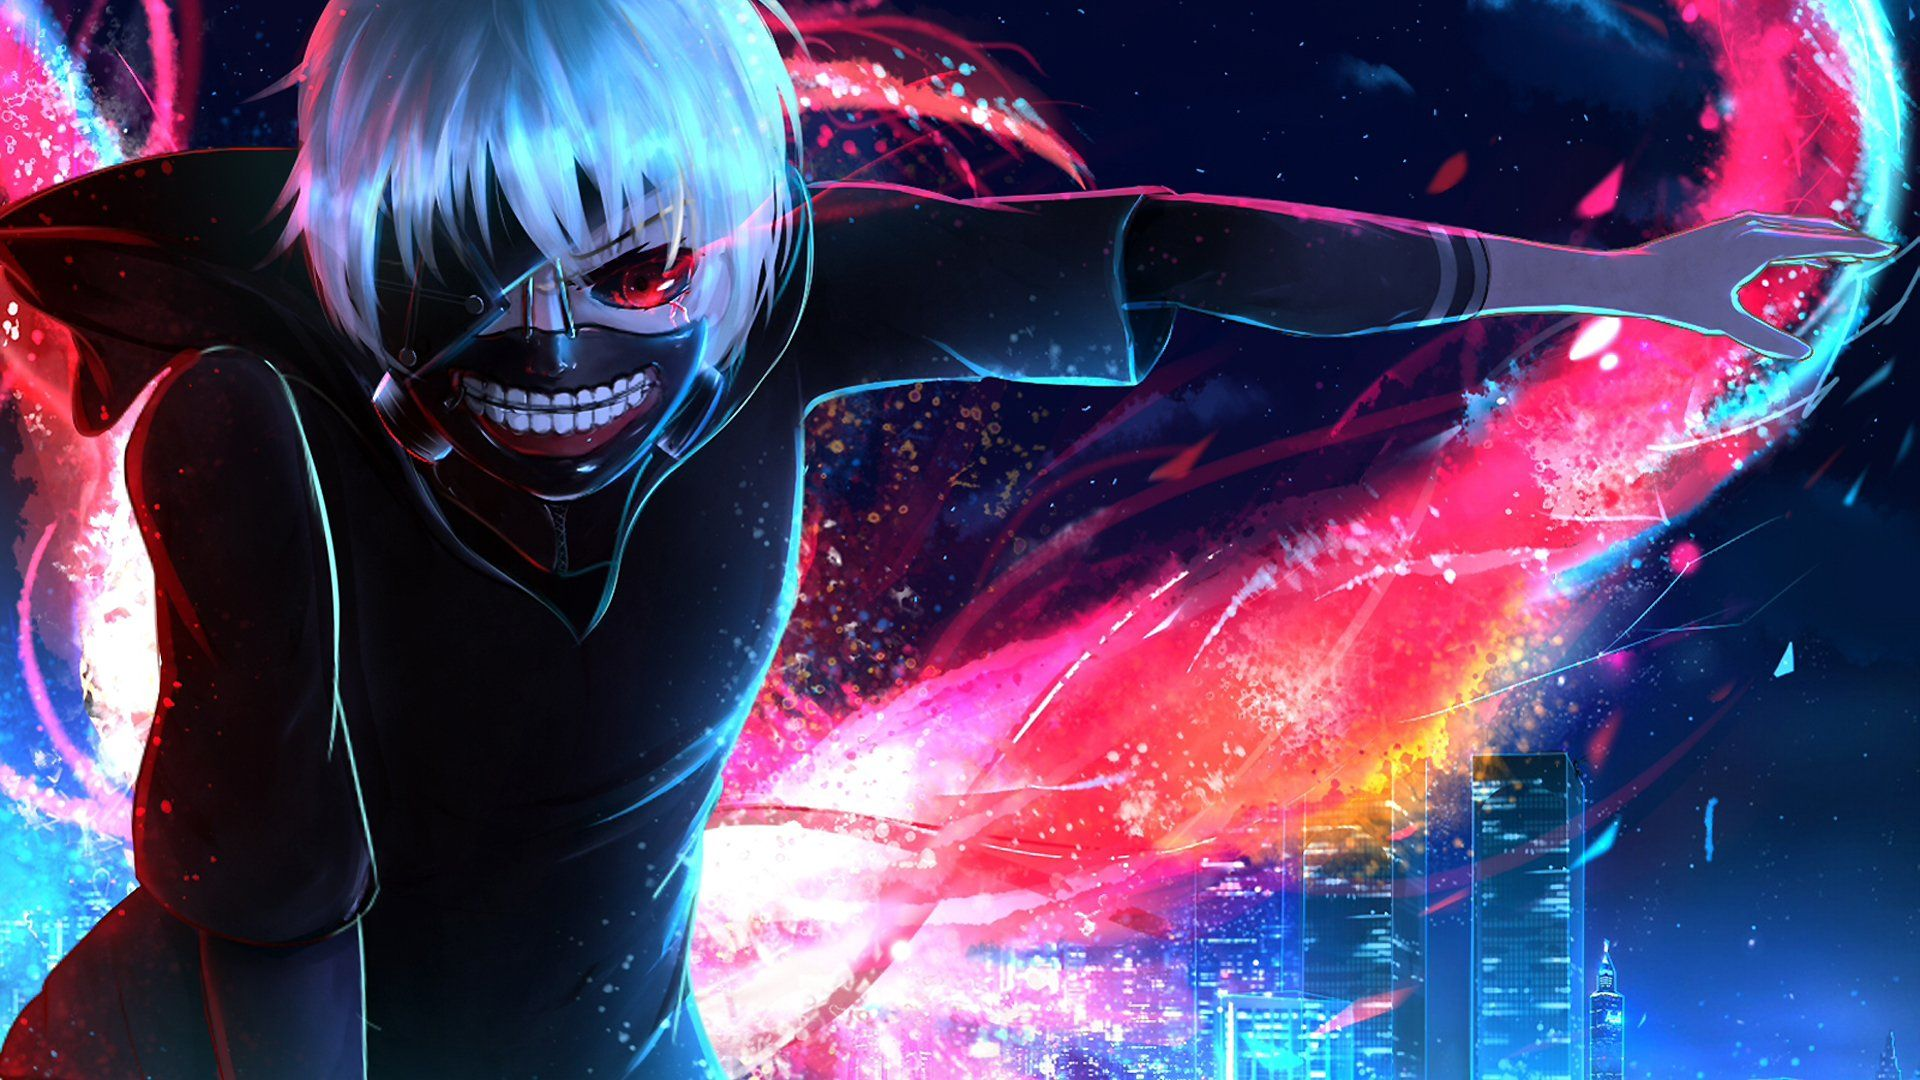 Tokyo Ghoul Hd Wallpaper Posted By Zoey Cunningham